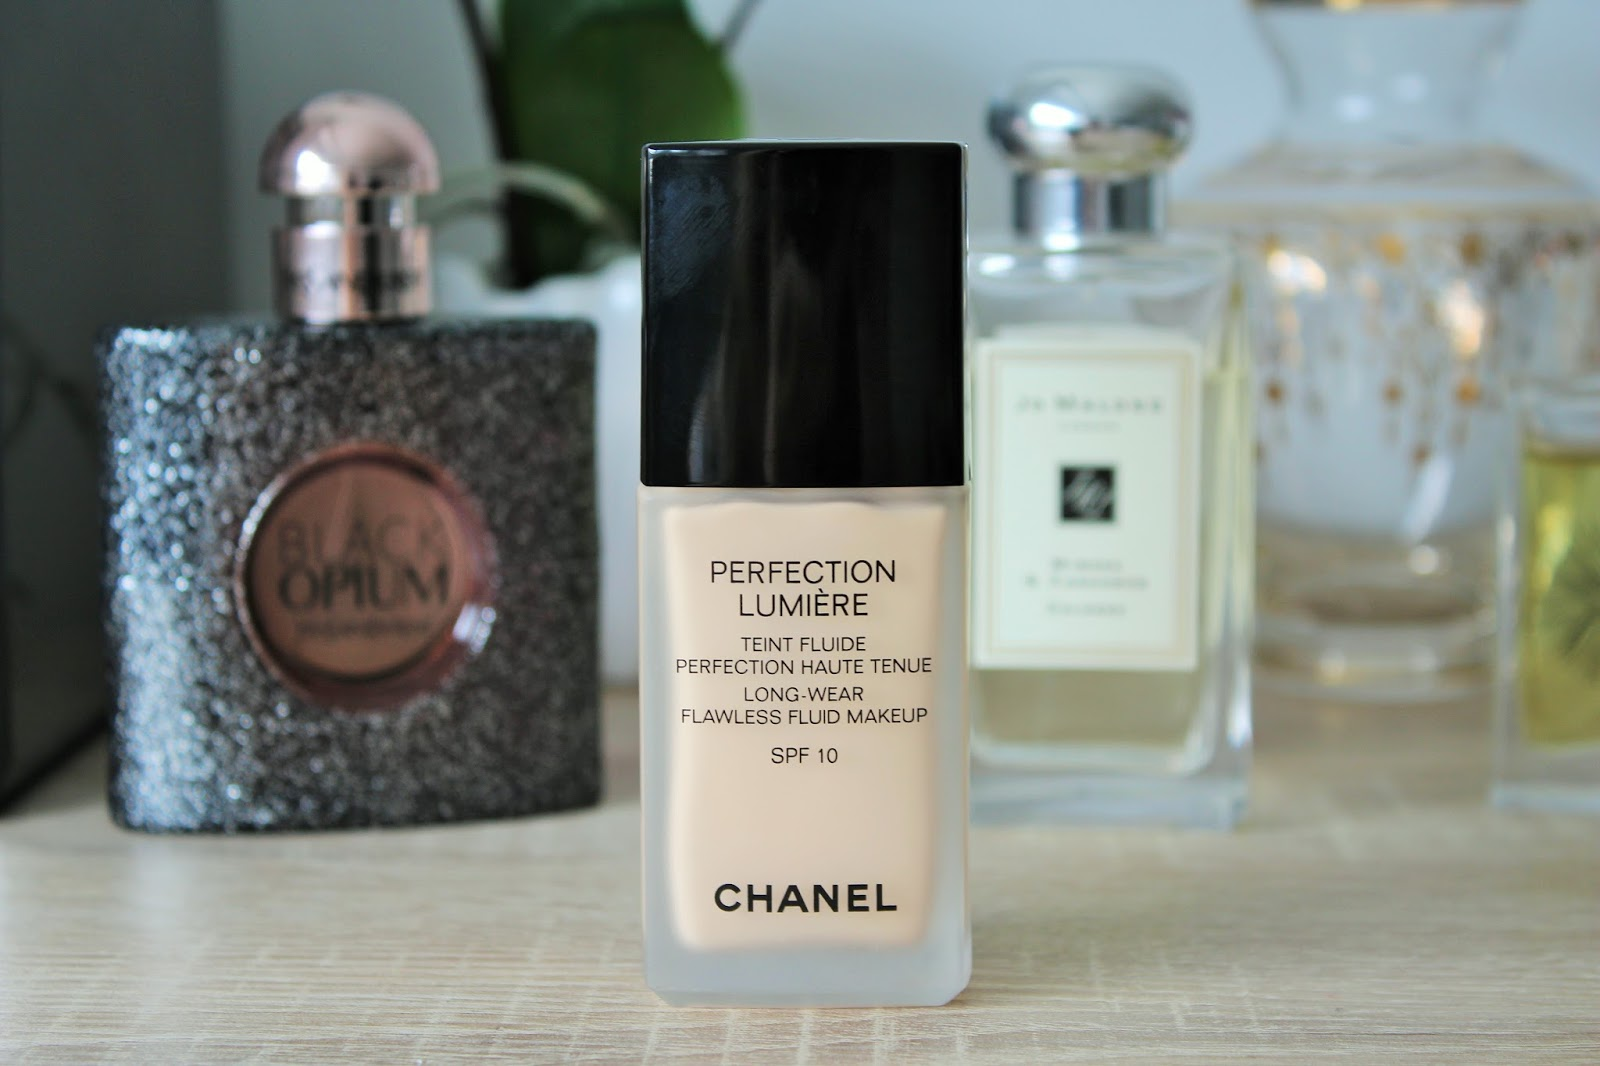 Chanel Perfection Lumiere Foundation Review 2